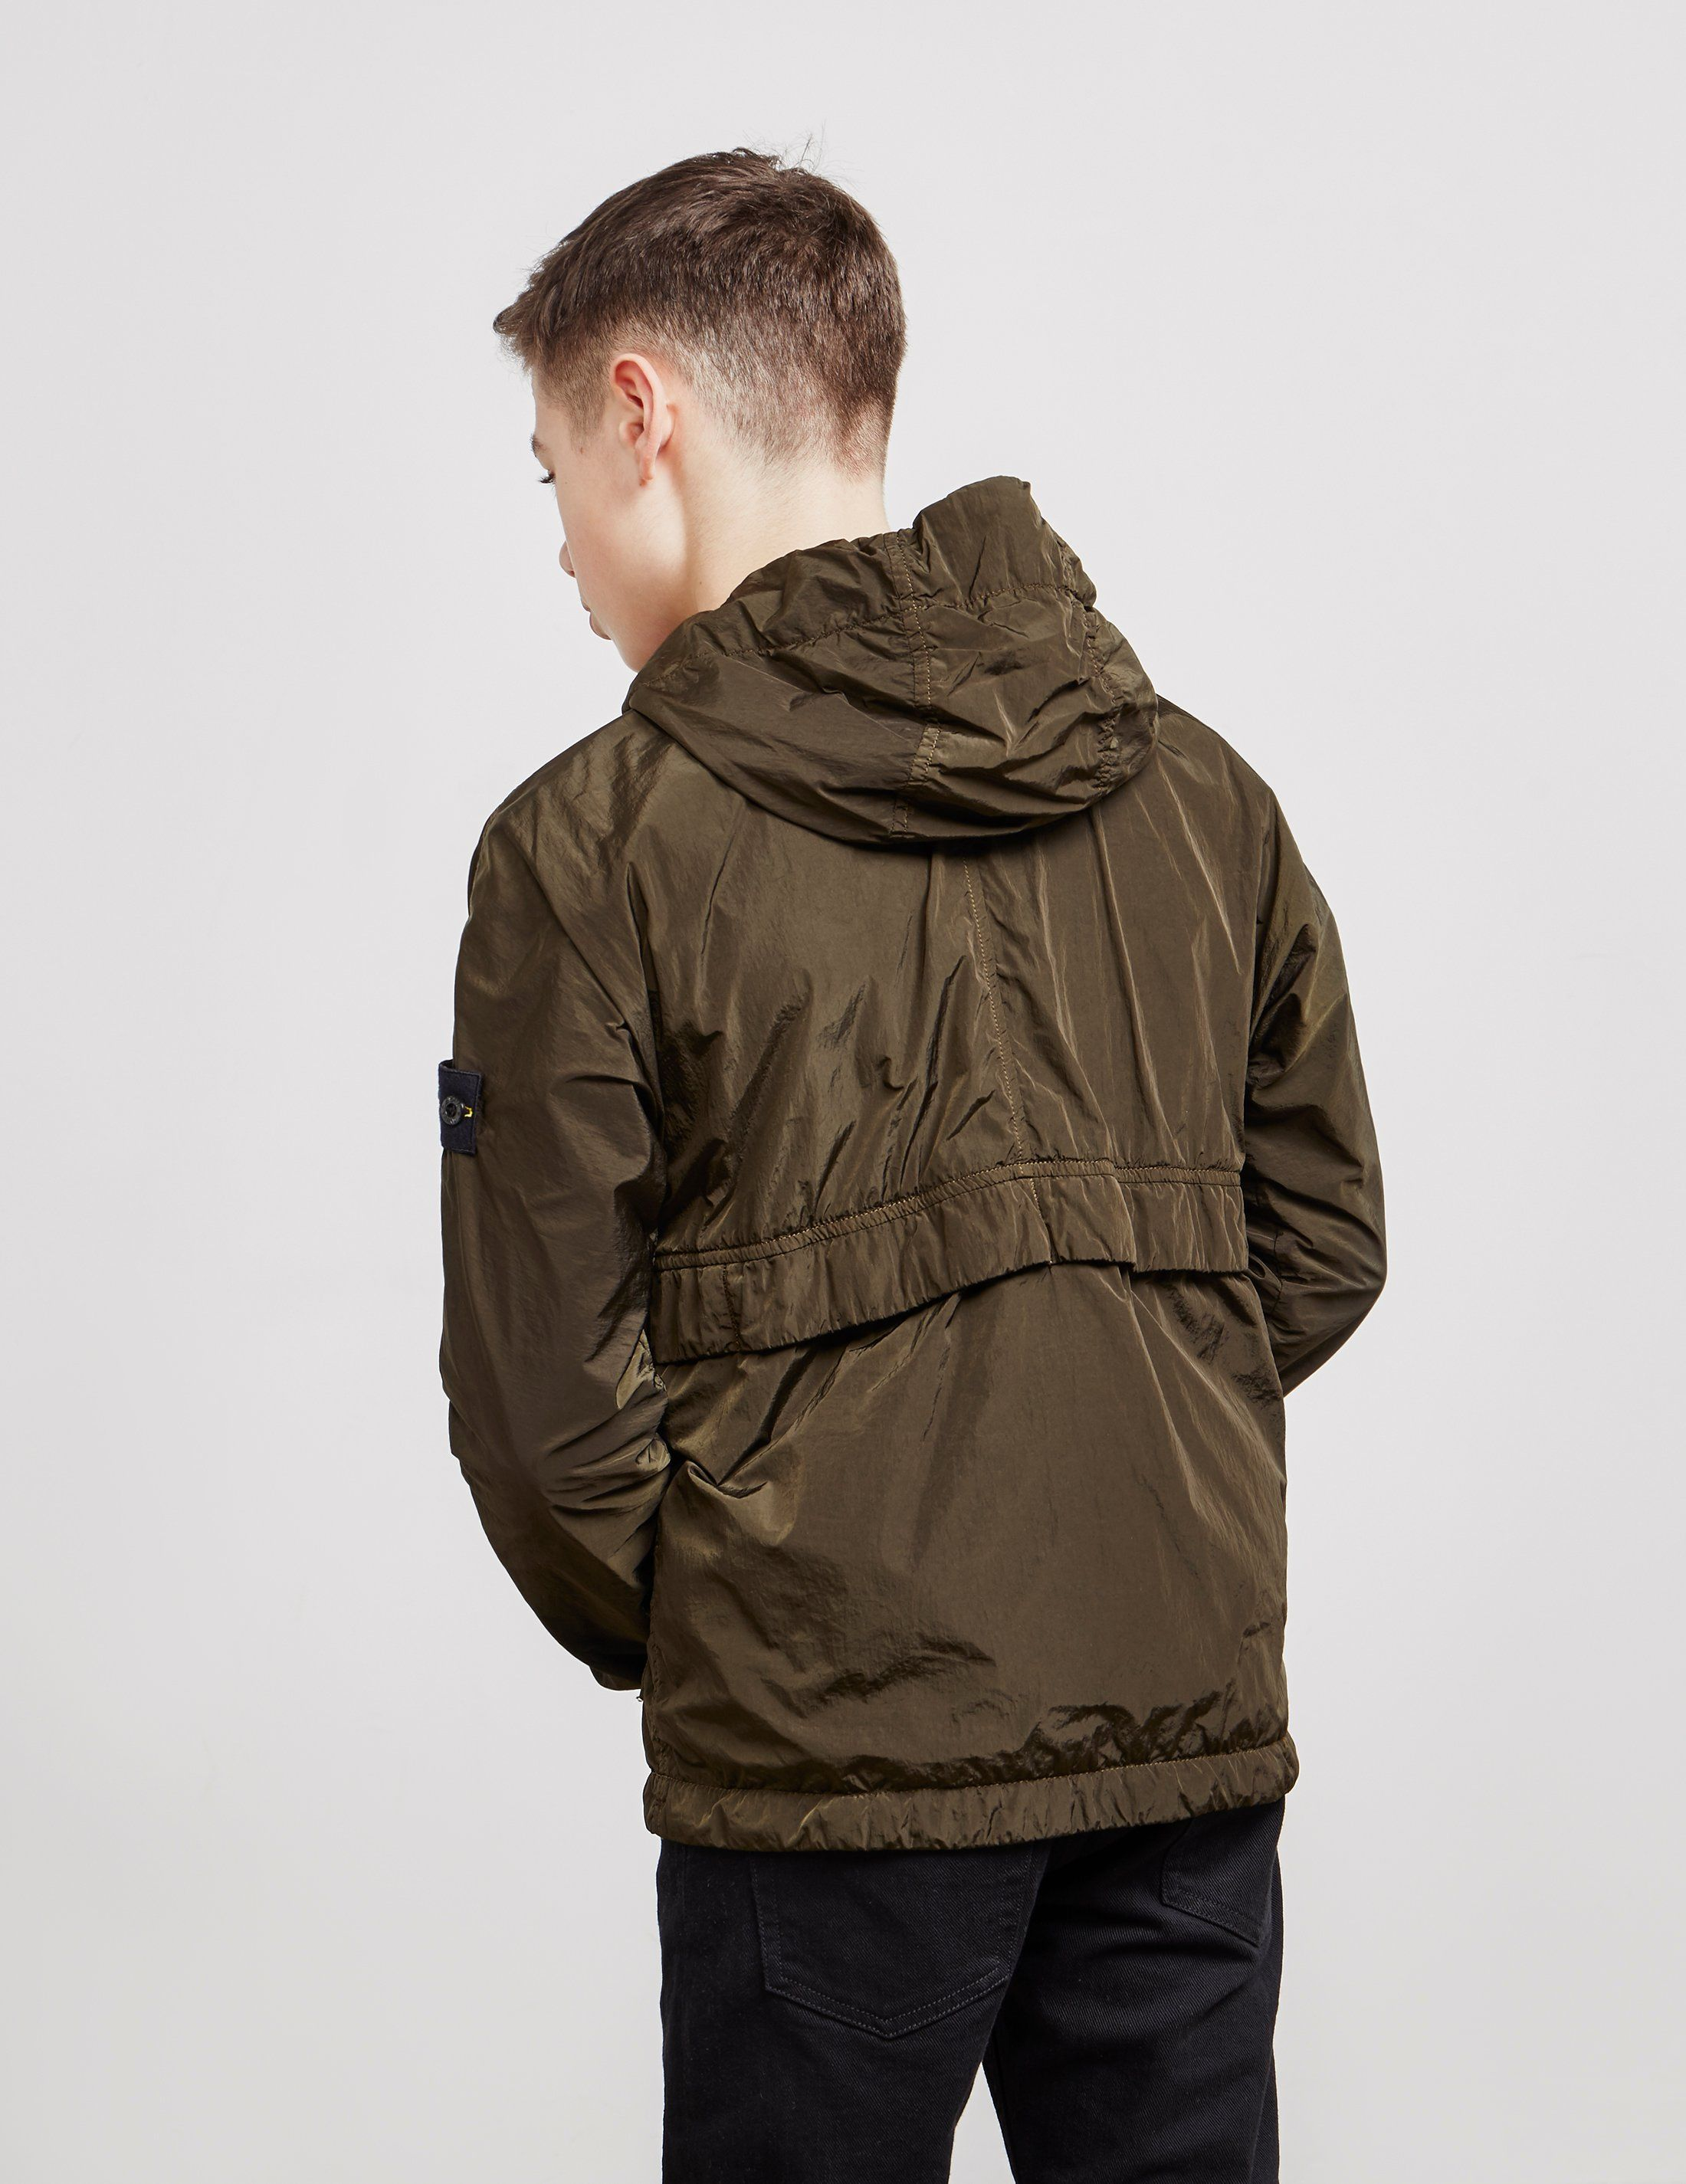 Stone Island Crinkle Hooded Jacket